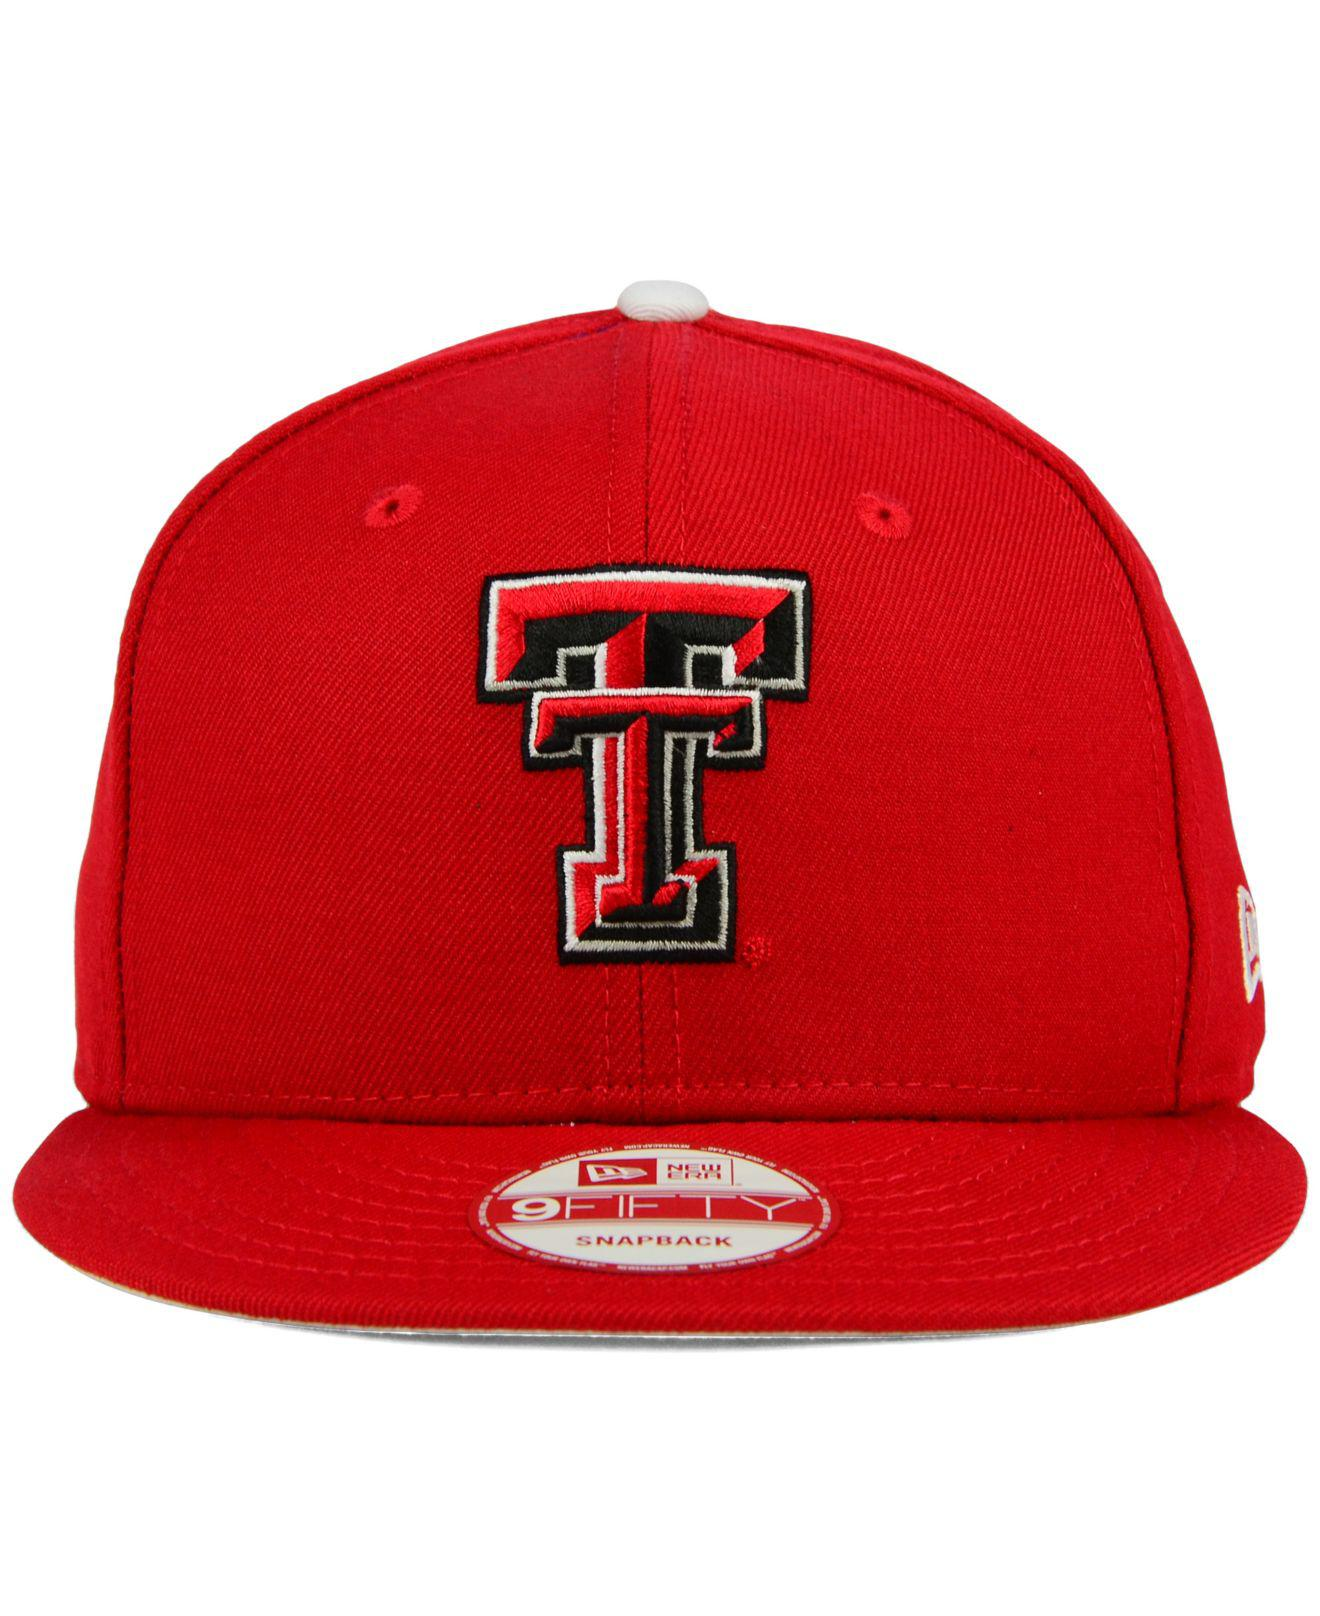 402ff8ead3f Lyst - KTZ Texas Tech Red Raiders Core 9fifty Snapback Cap in Red for Men